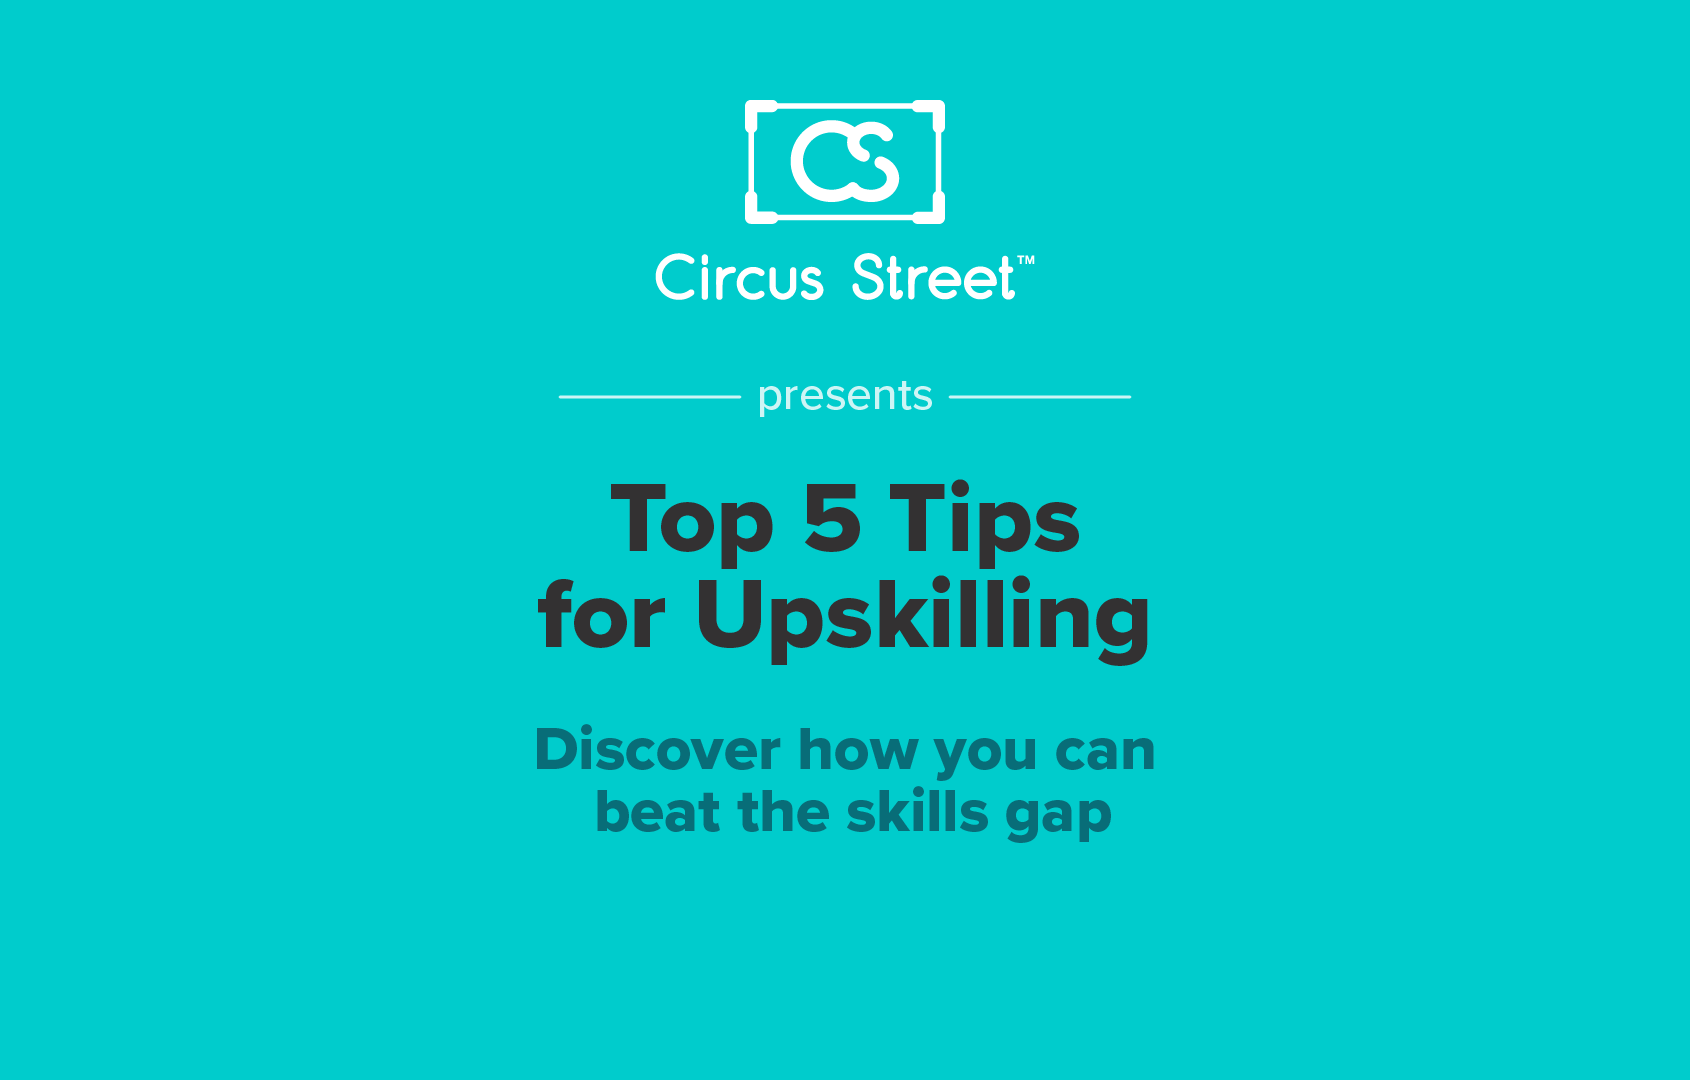 Top 5 Tips for Digital Upskilling